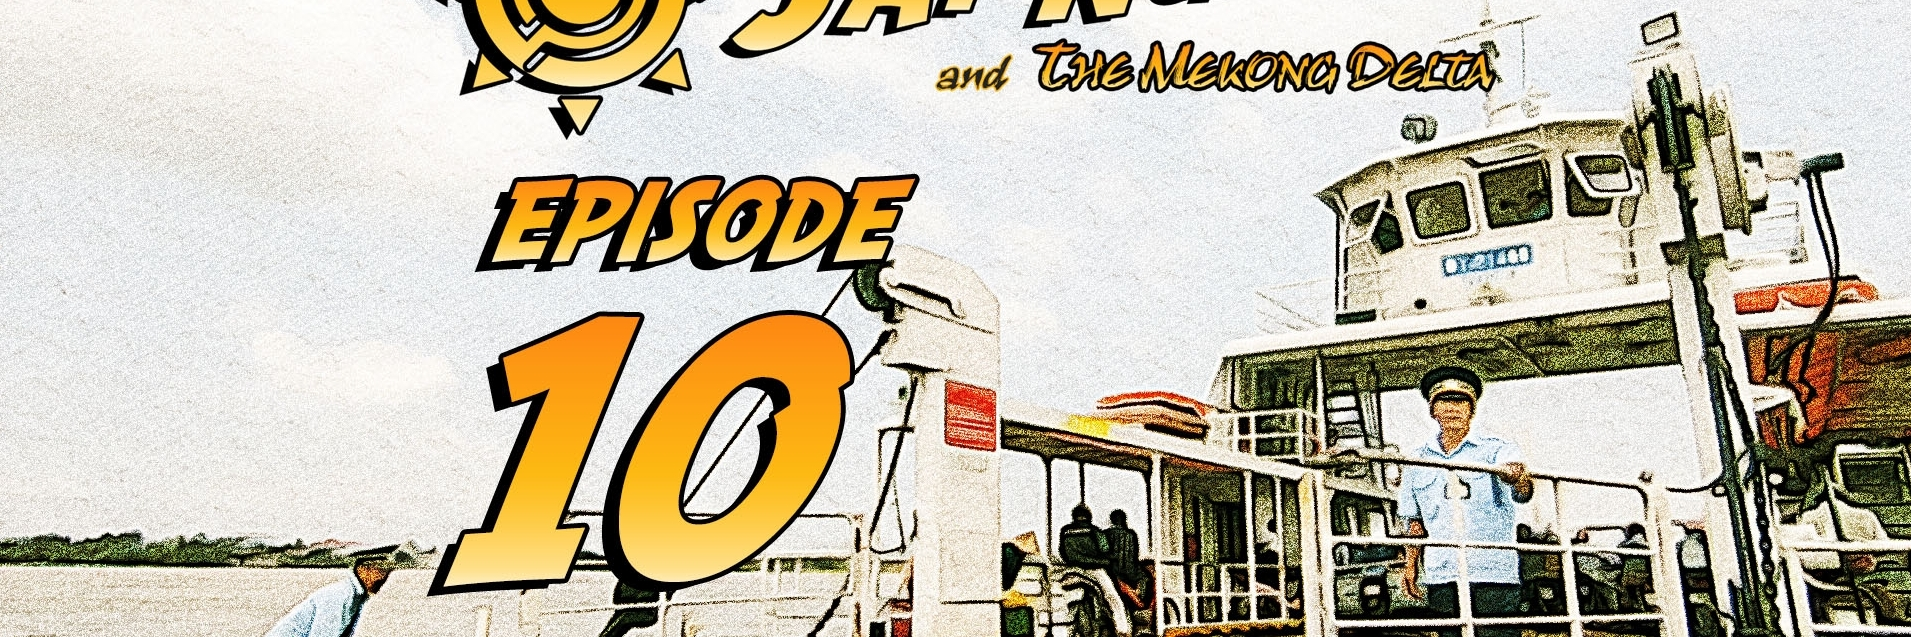 https://gody.vn/blog/digital.sennin.gs6813/post/the-mekong-delta-episode-10-ben-pha-cao-lanh-100-nam-tuoi-gio-ra-sao-5080